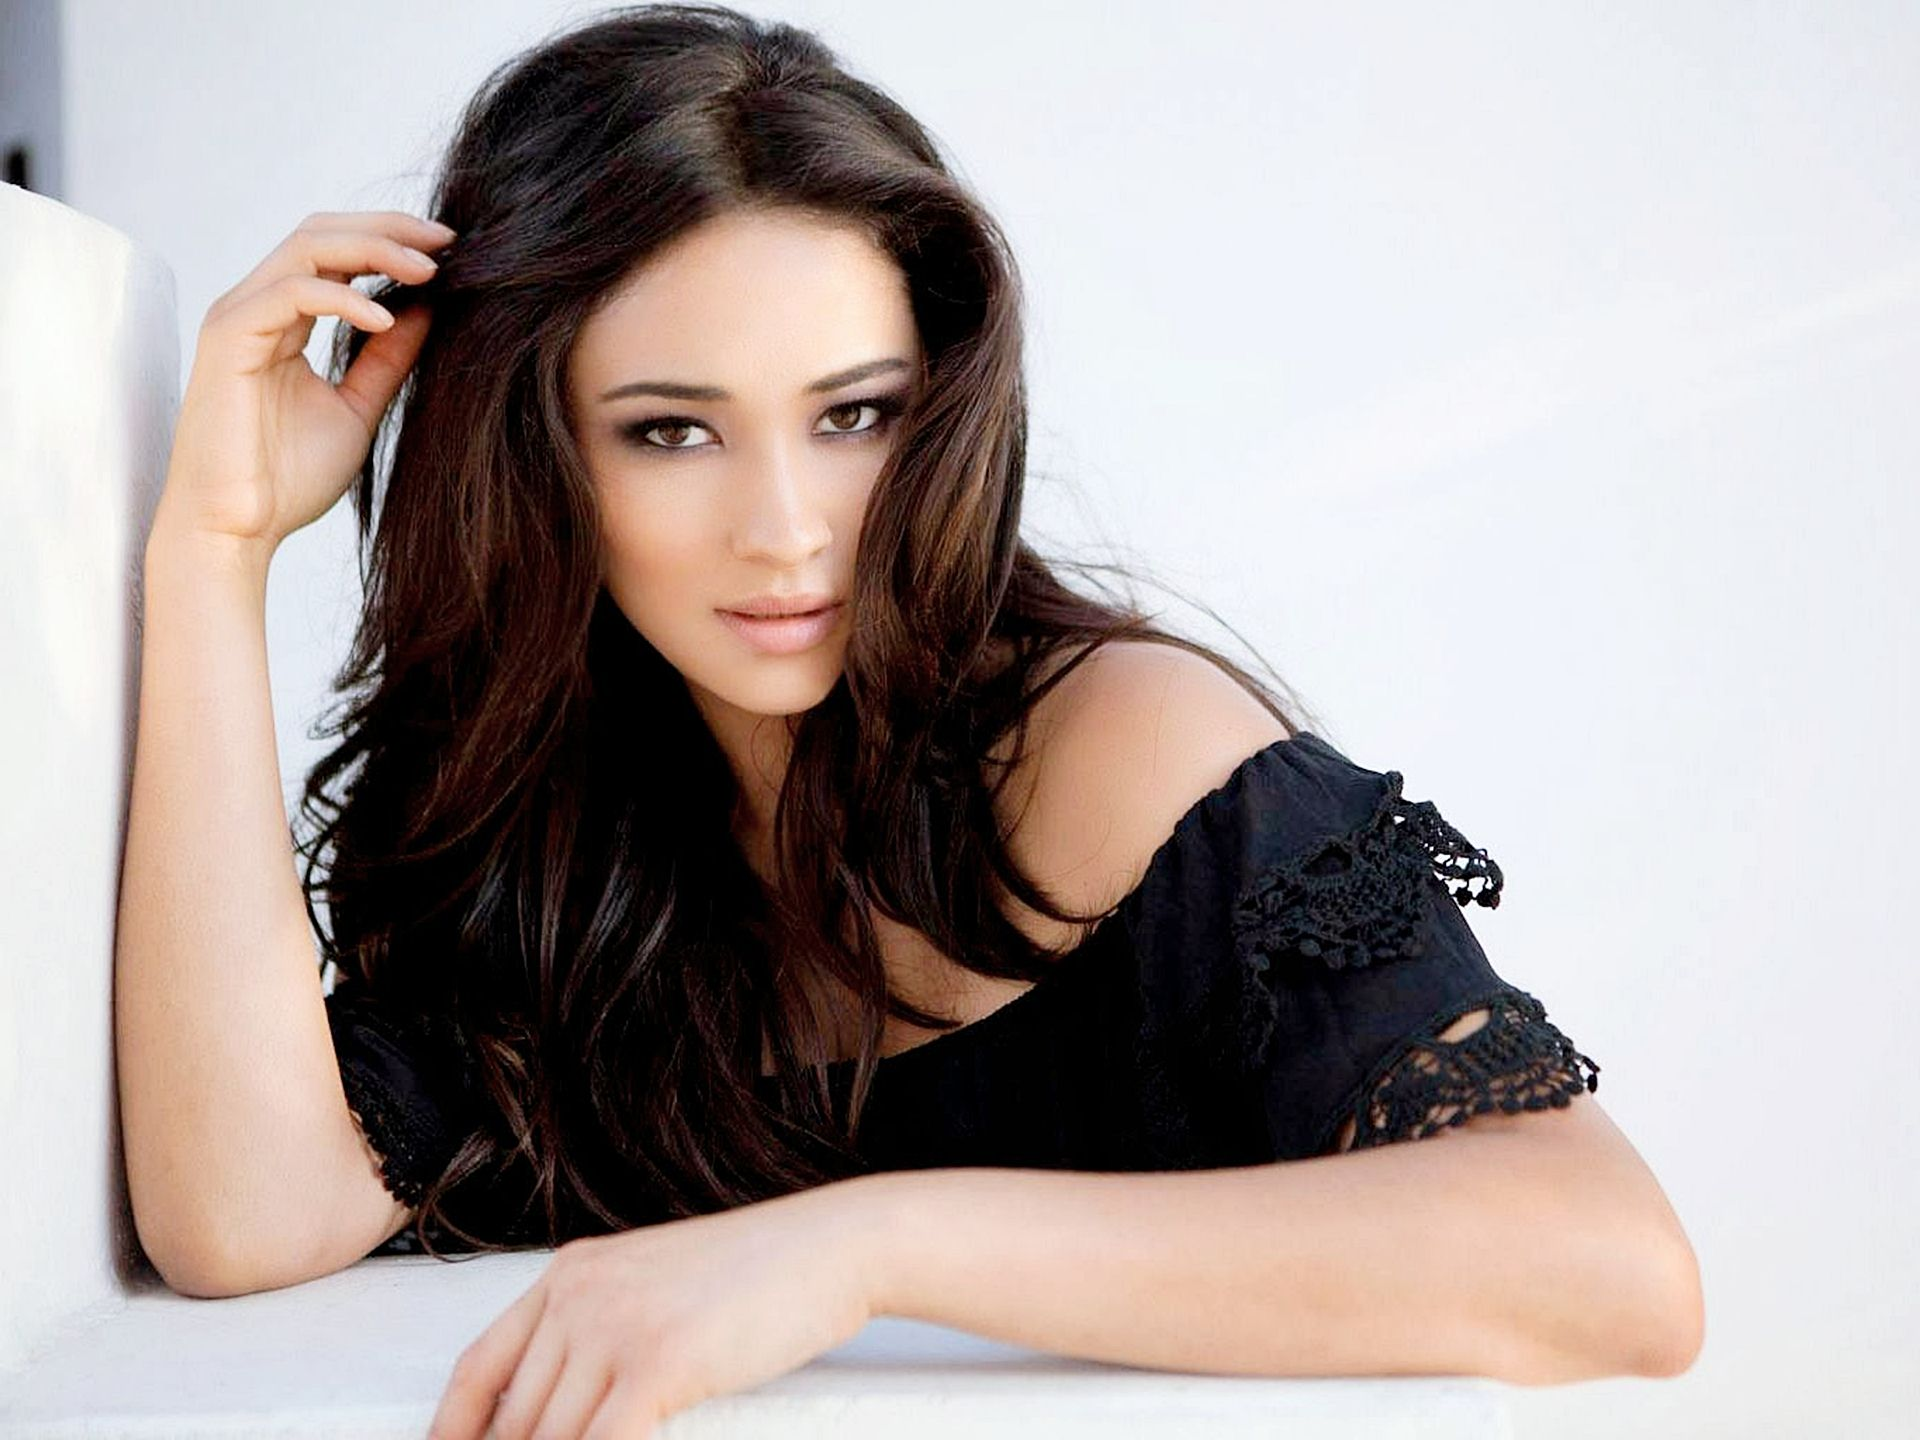 shay mitchell hd wallpapers 633